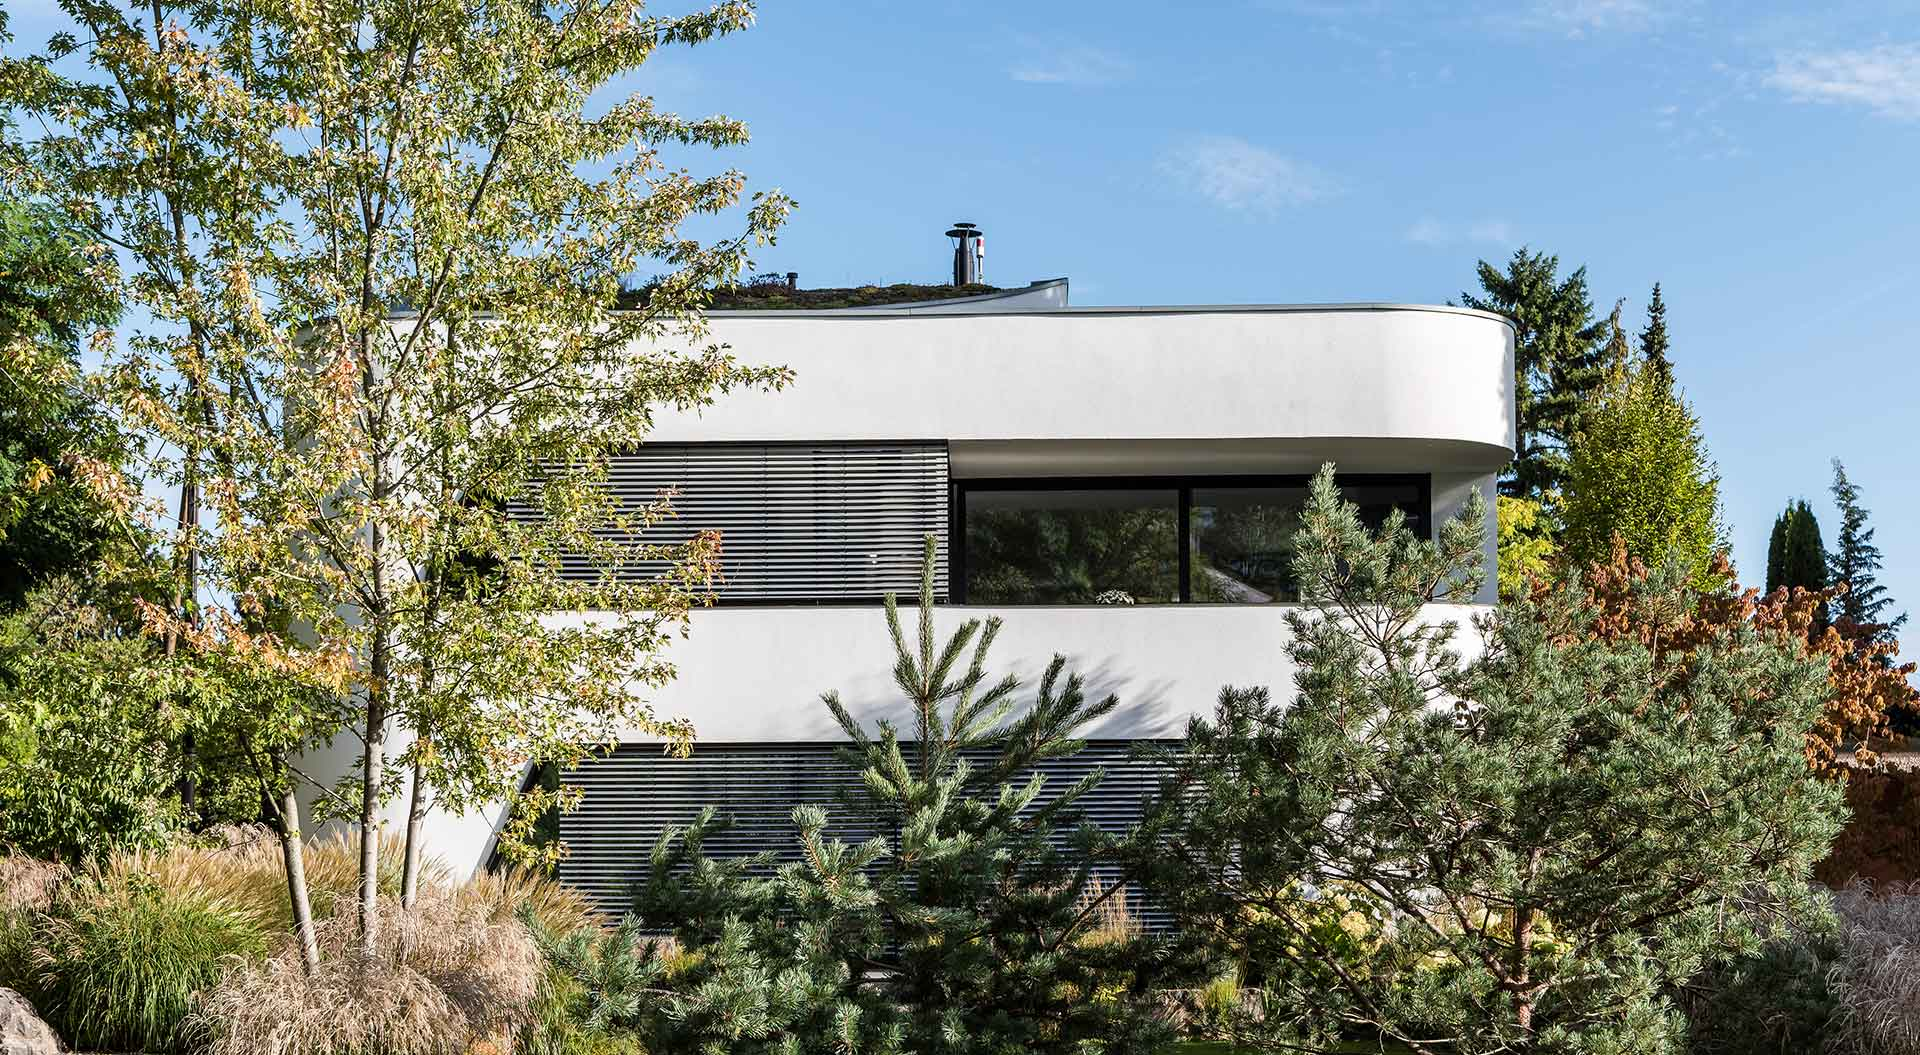 Coniferous and deciduous trees underline the beautiful appearance of the house